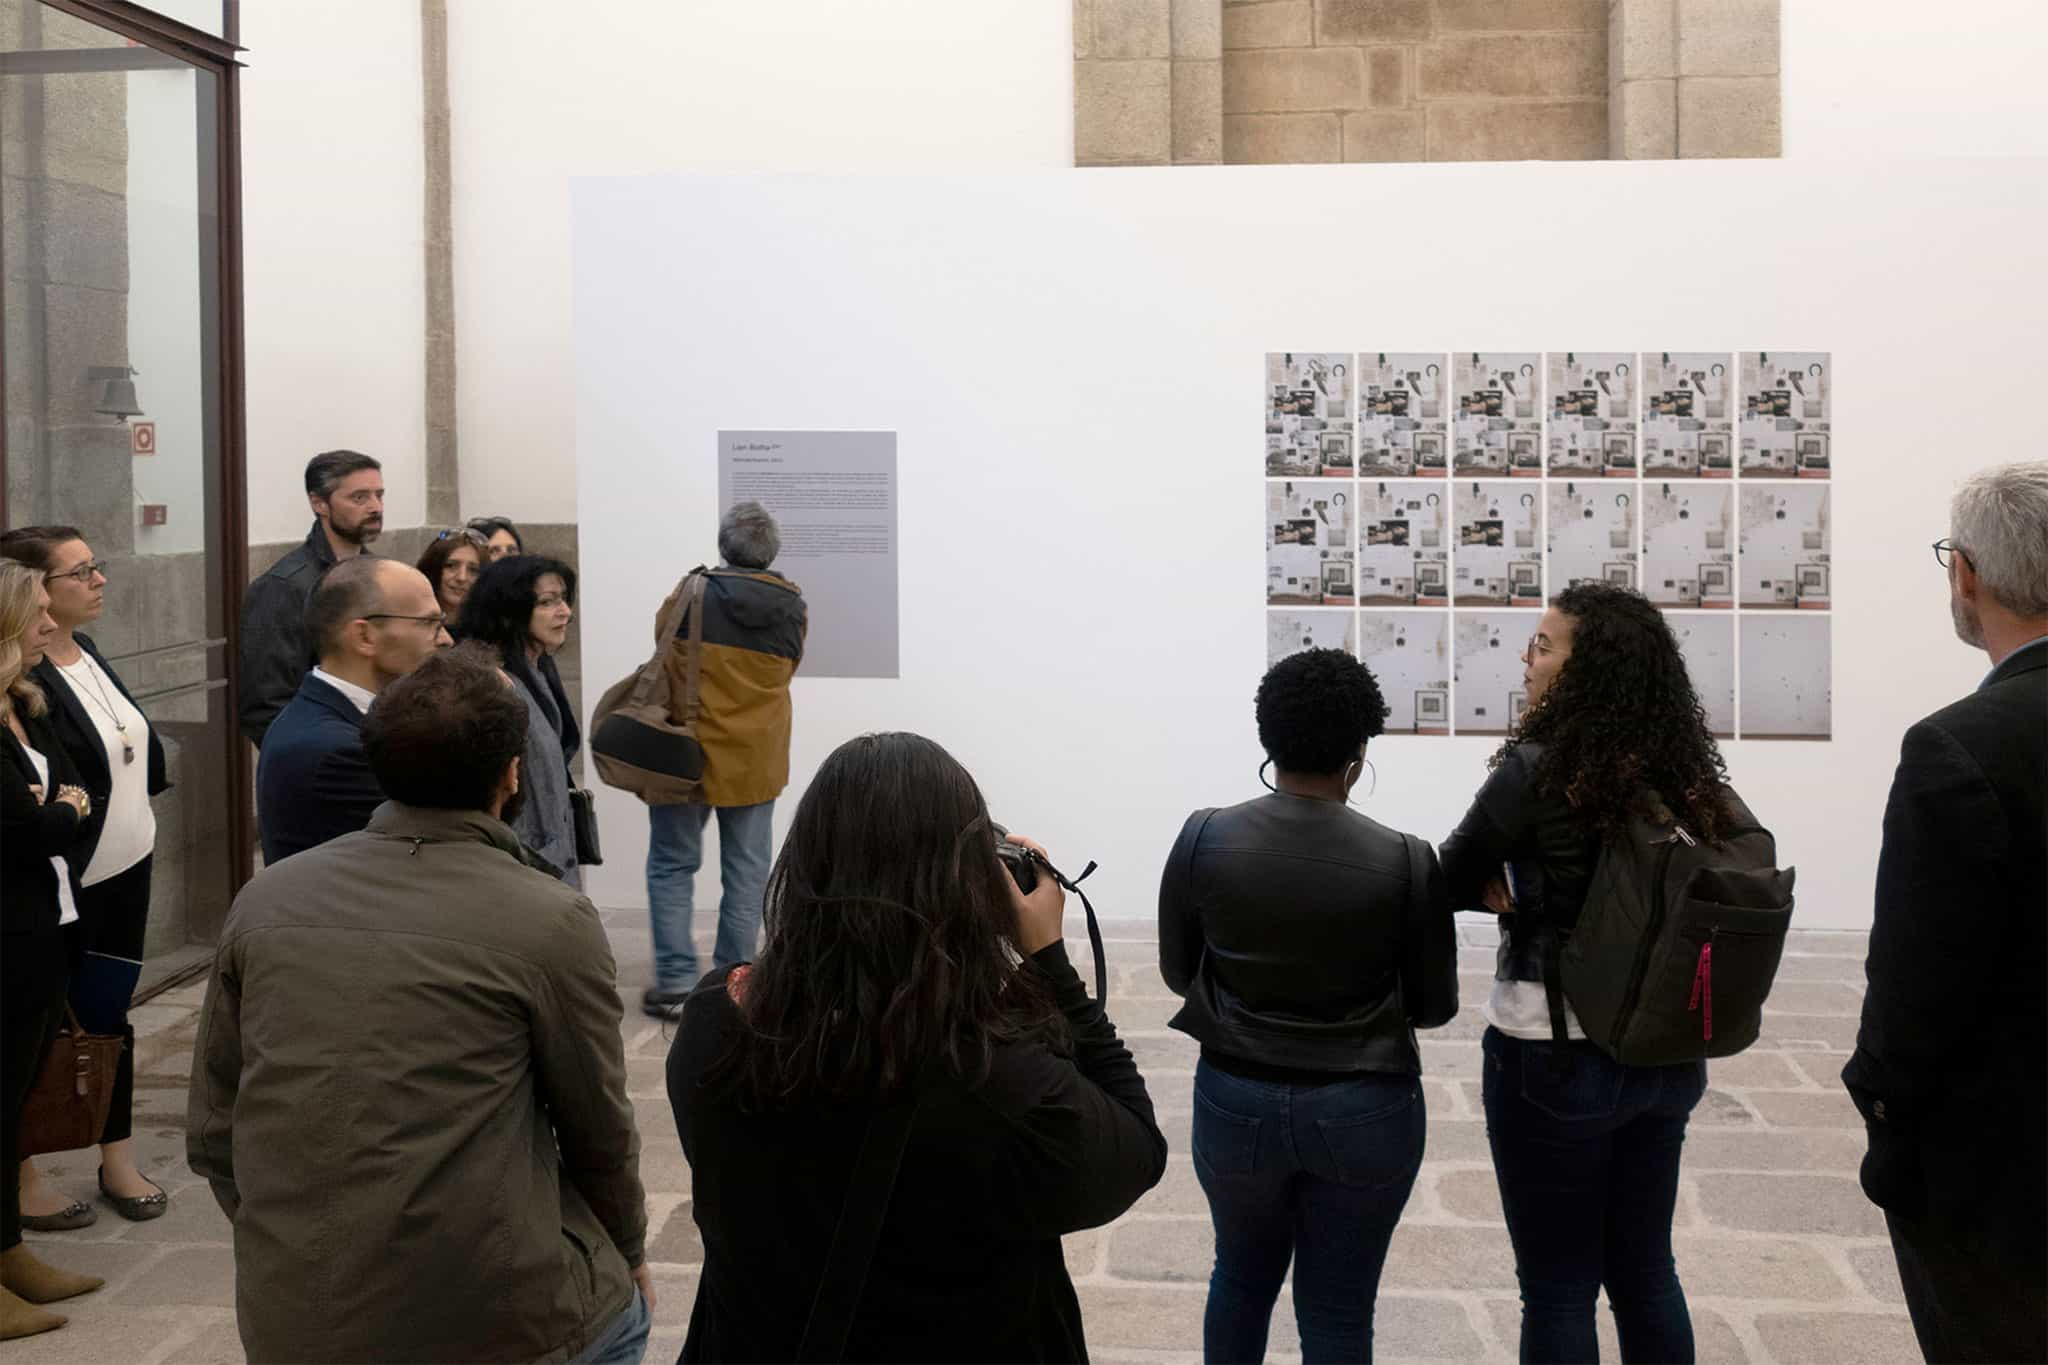 Opening of the exhibition Sixth Nature, with works of Lien Botha (ZA) and Edson Chagas (AO) at the Porto Photography Biennale